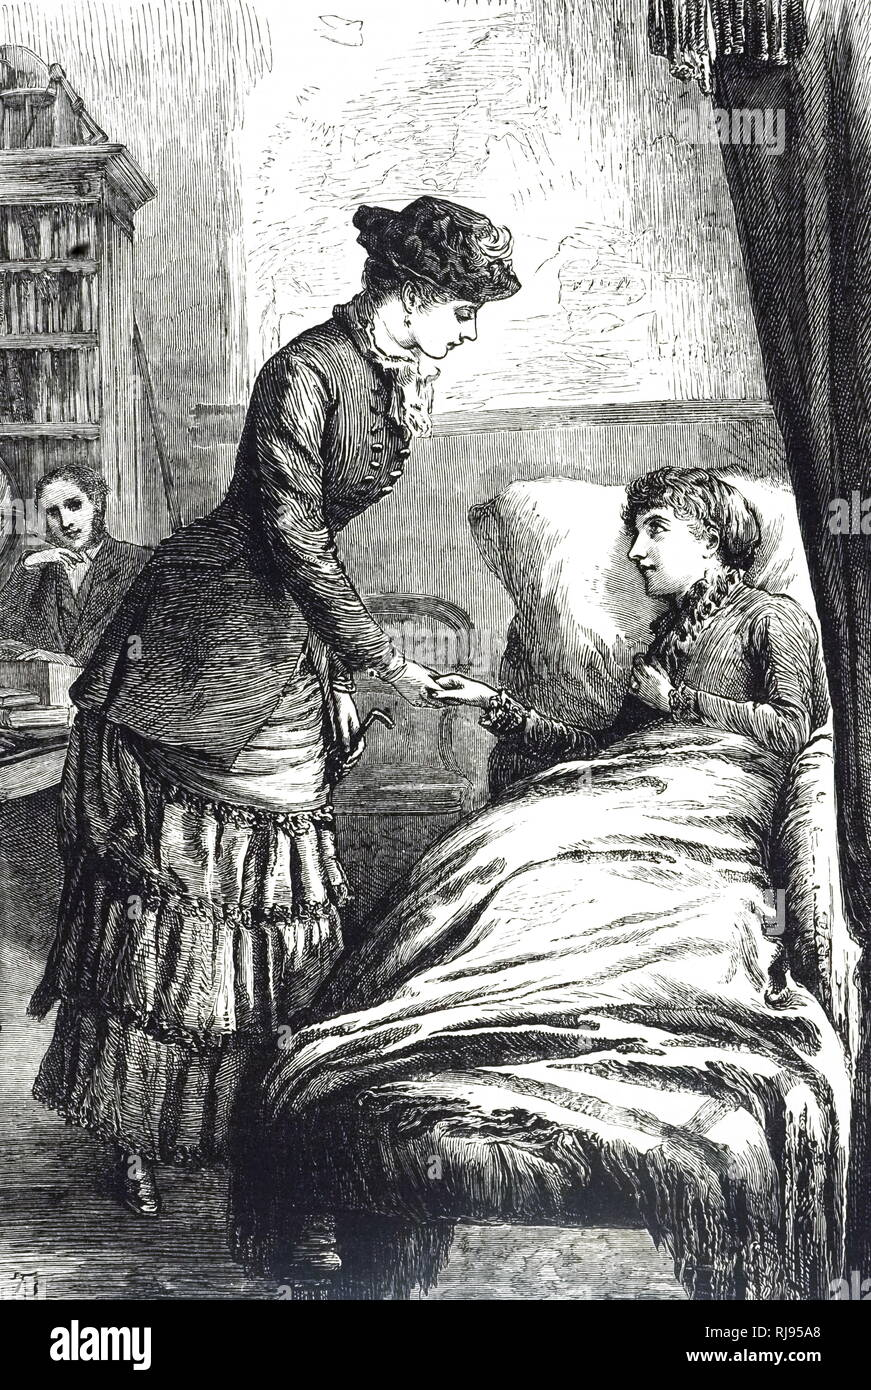 An engraving depicting a woman visiting her sickly friend. Dated 19th century - Stock Image